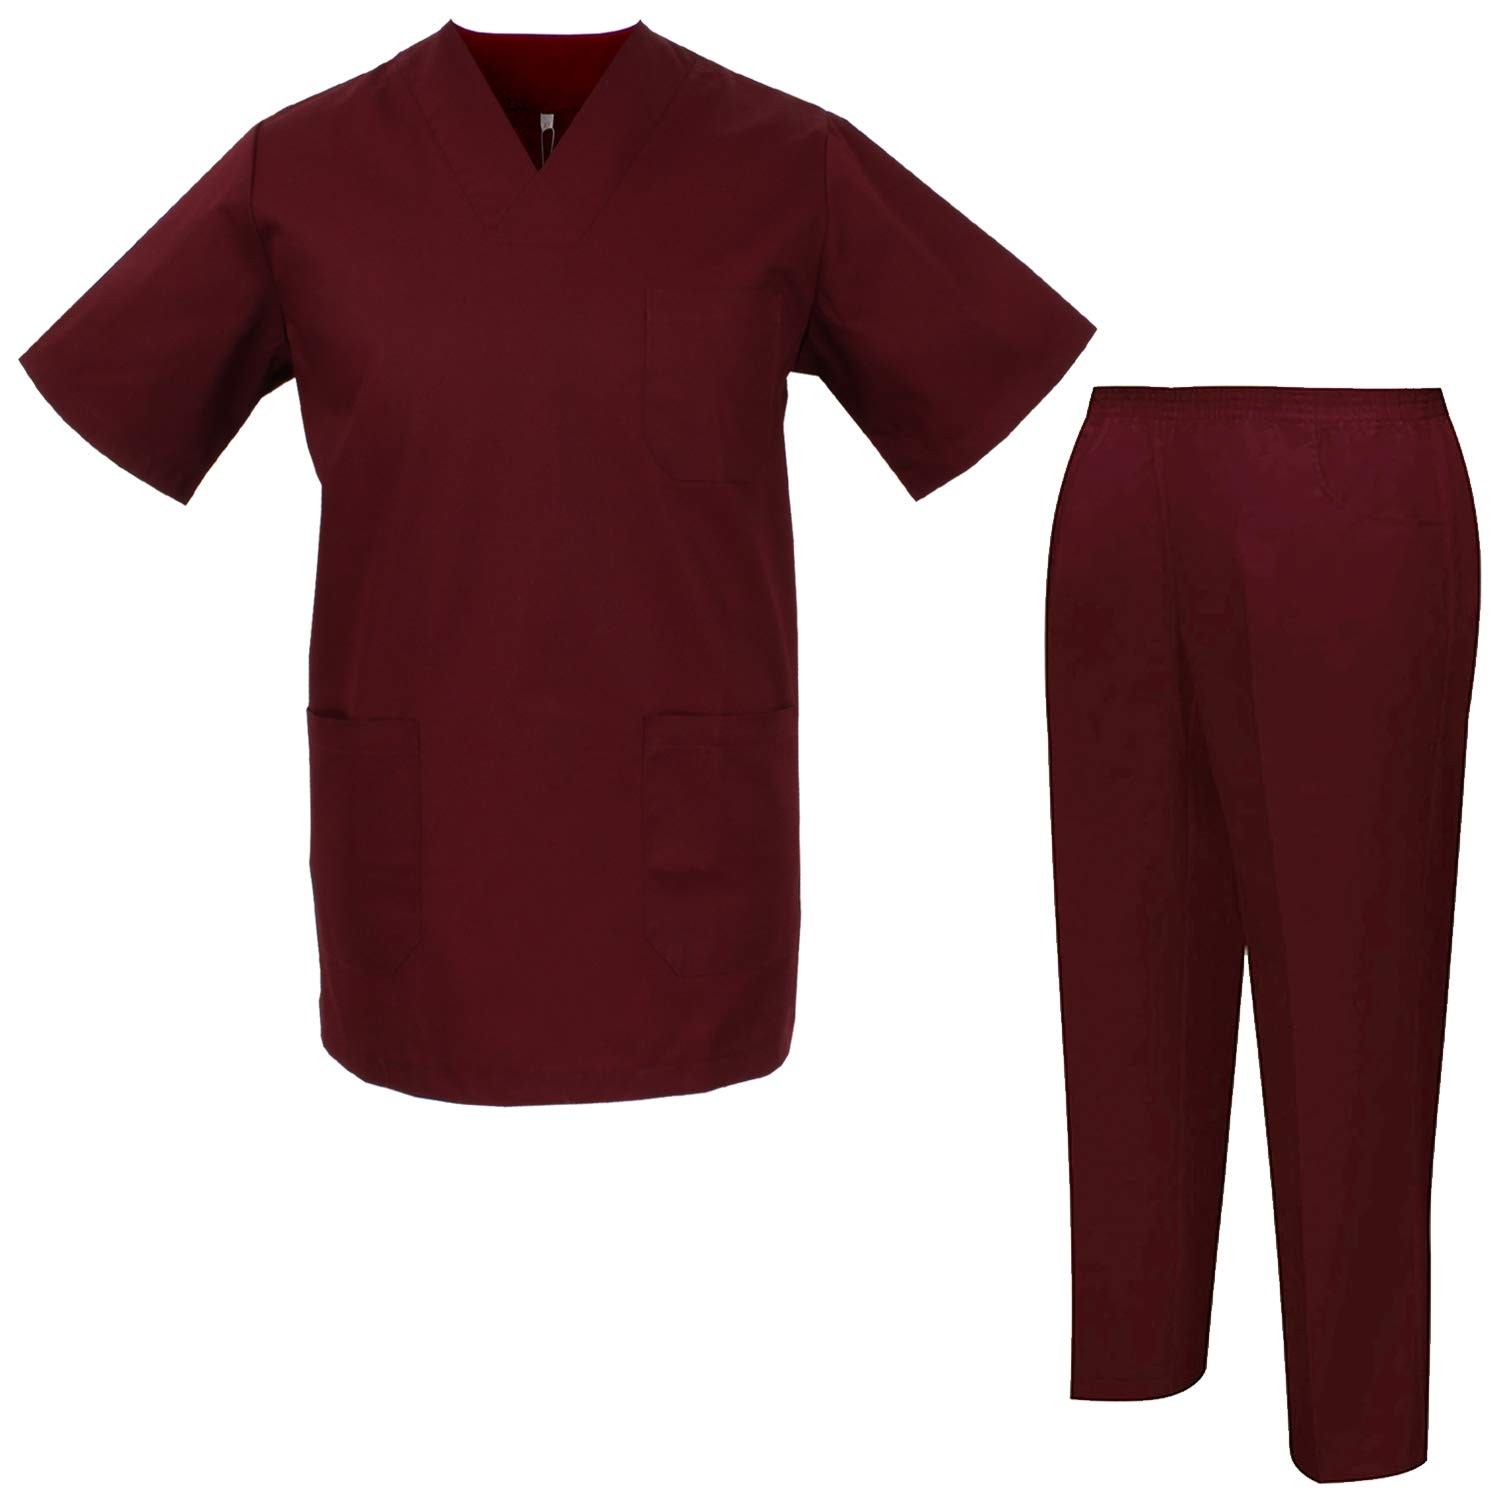 MISEMIYA - Uniforms Unisex Scrub Set – Medical Uniform with Scrub Top and Pants - Ref.8178